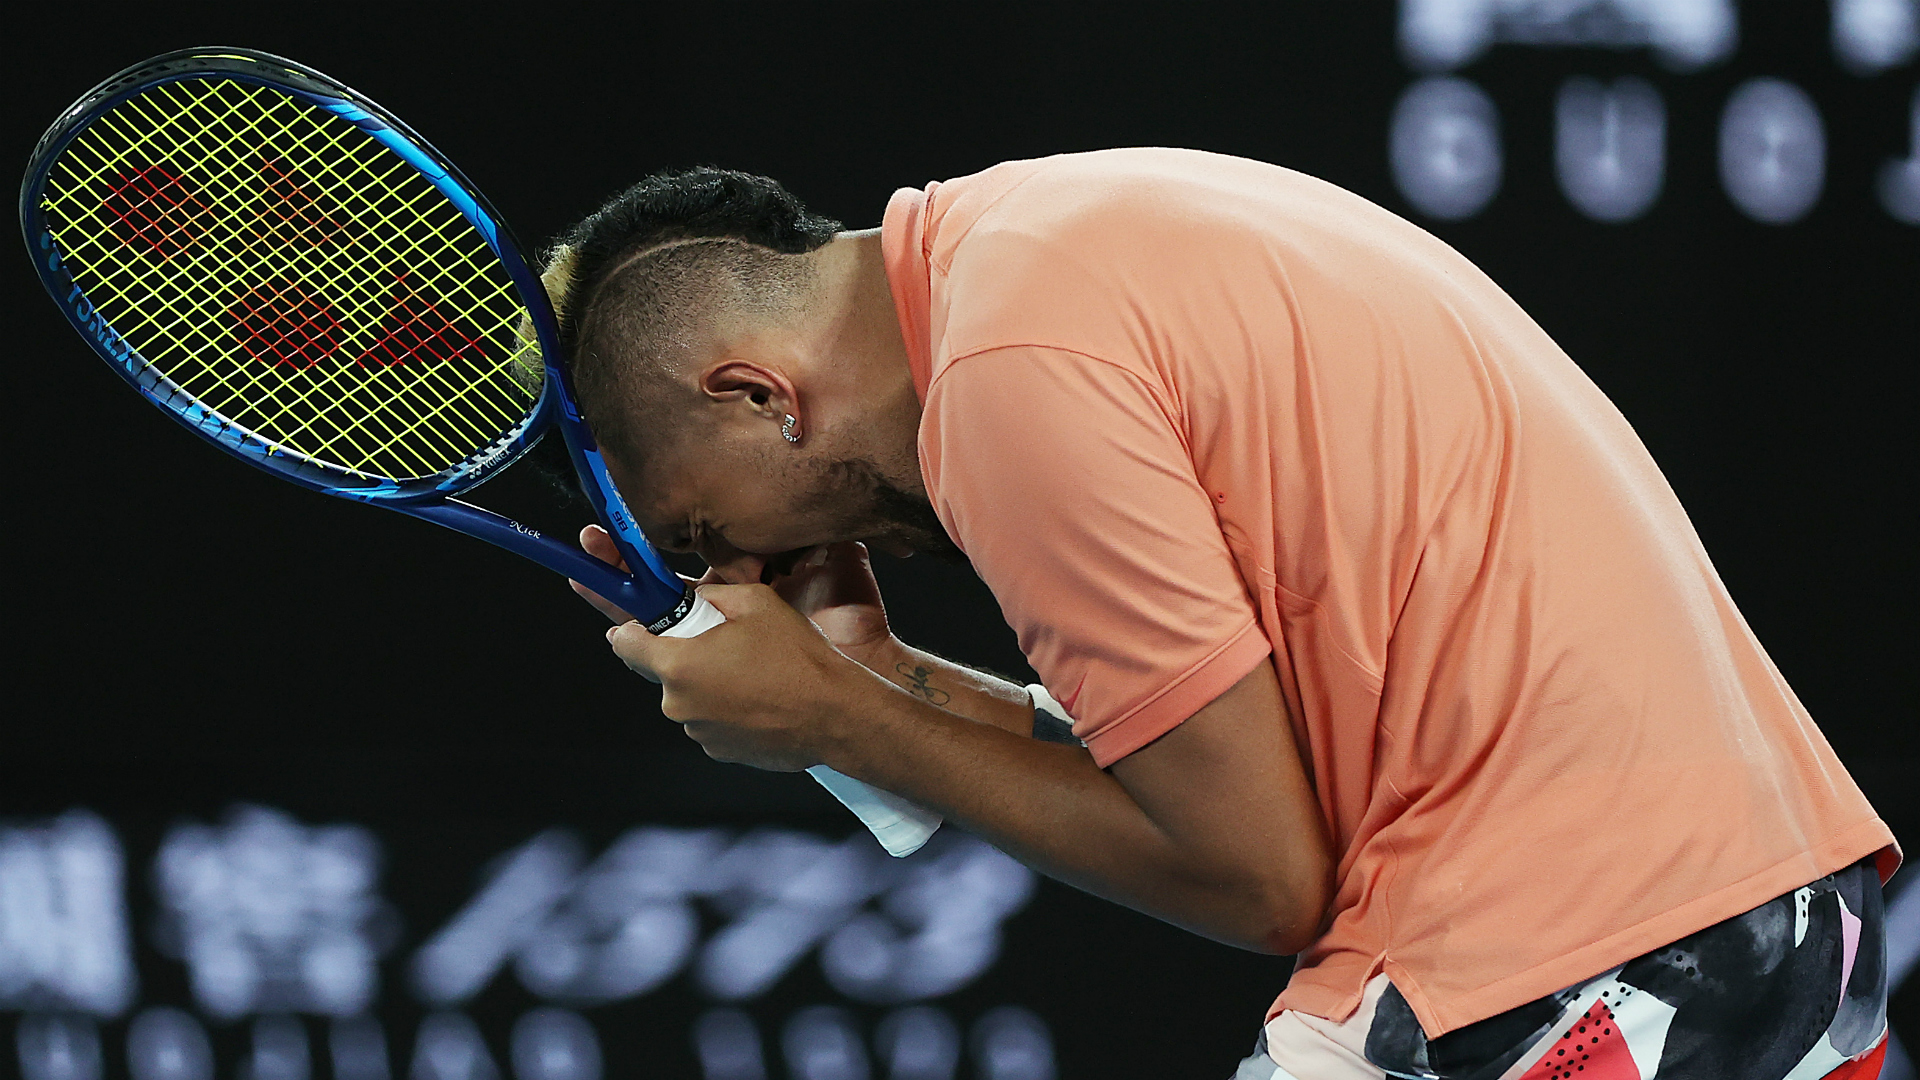 Australian Open 2020: Kyrgios 'shattered' to lose but appreciates 'champion' Nadal